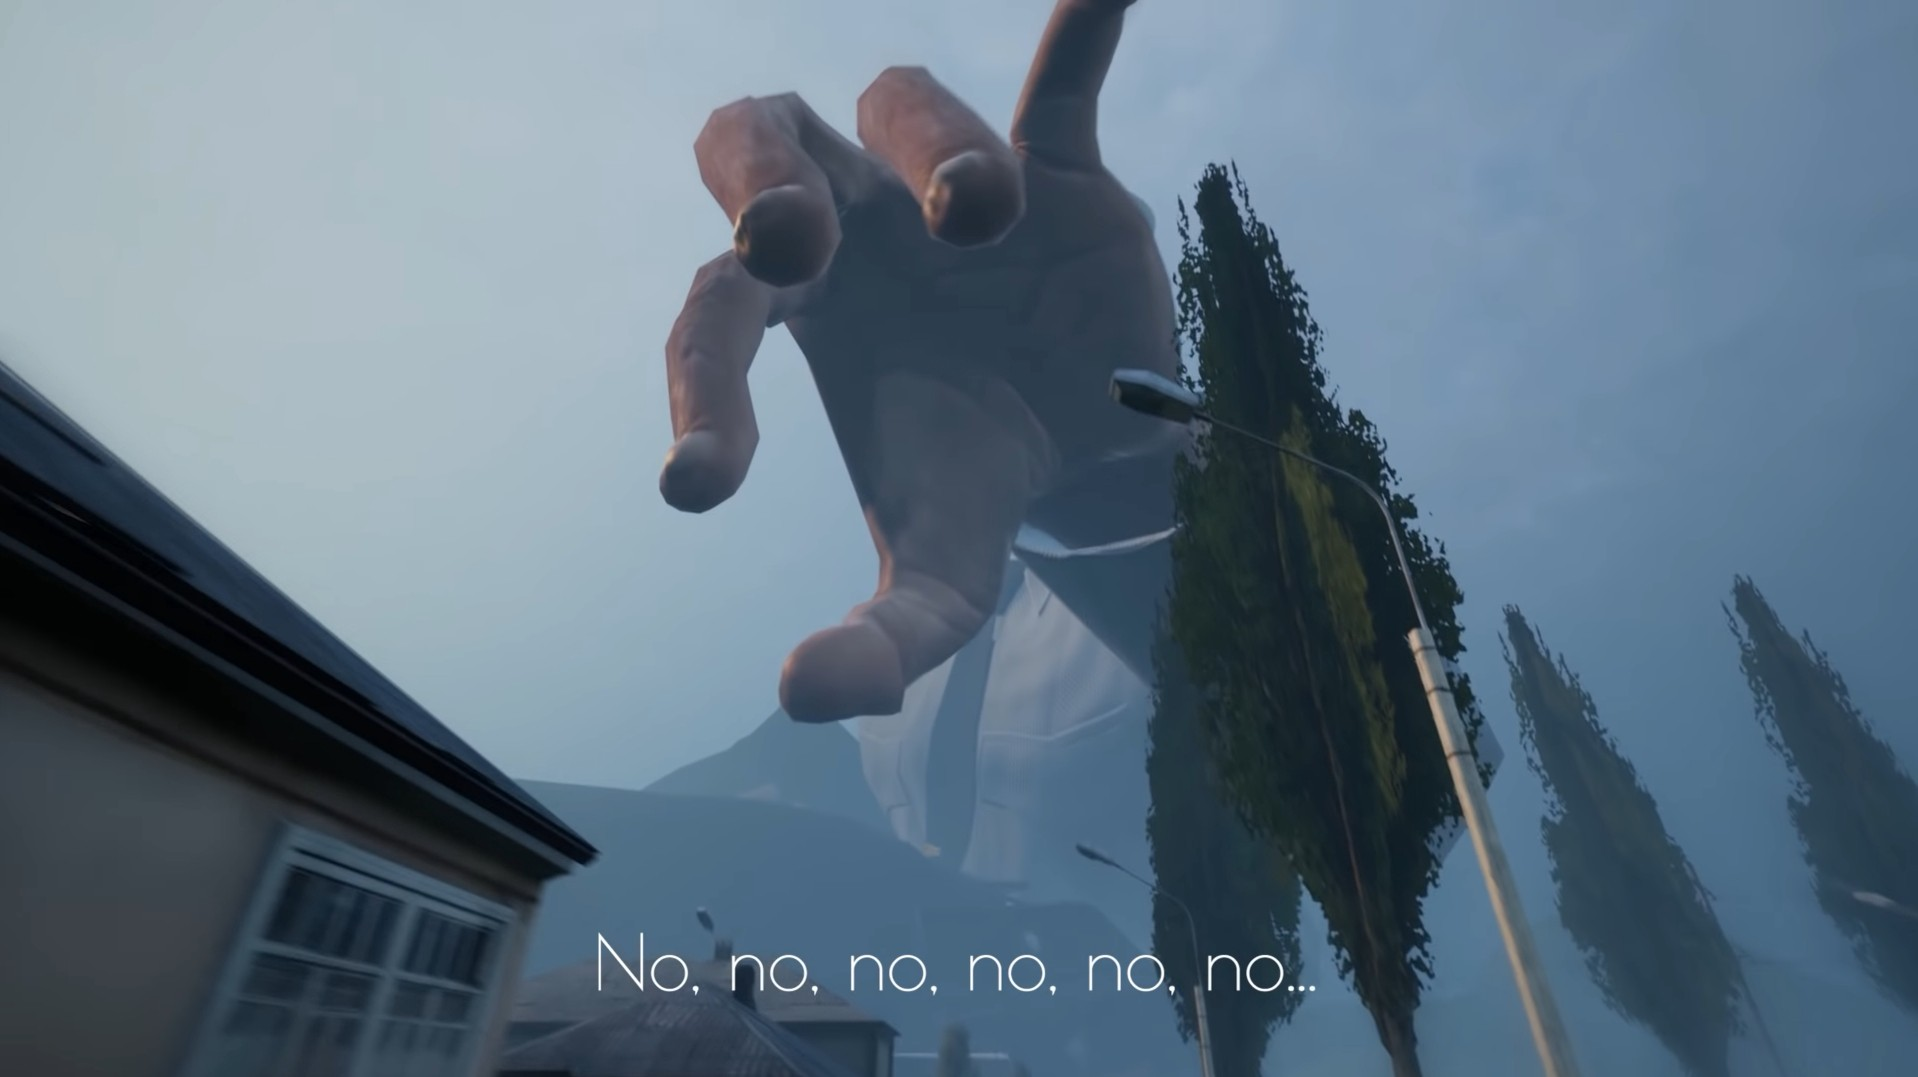 A giant hand reaches down to pick up the player with the subtitle no, no, no, no